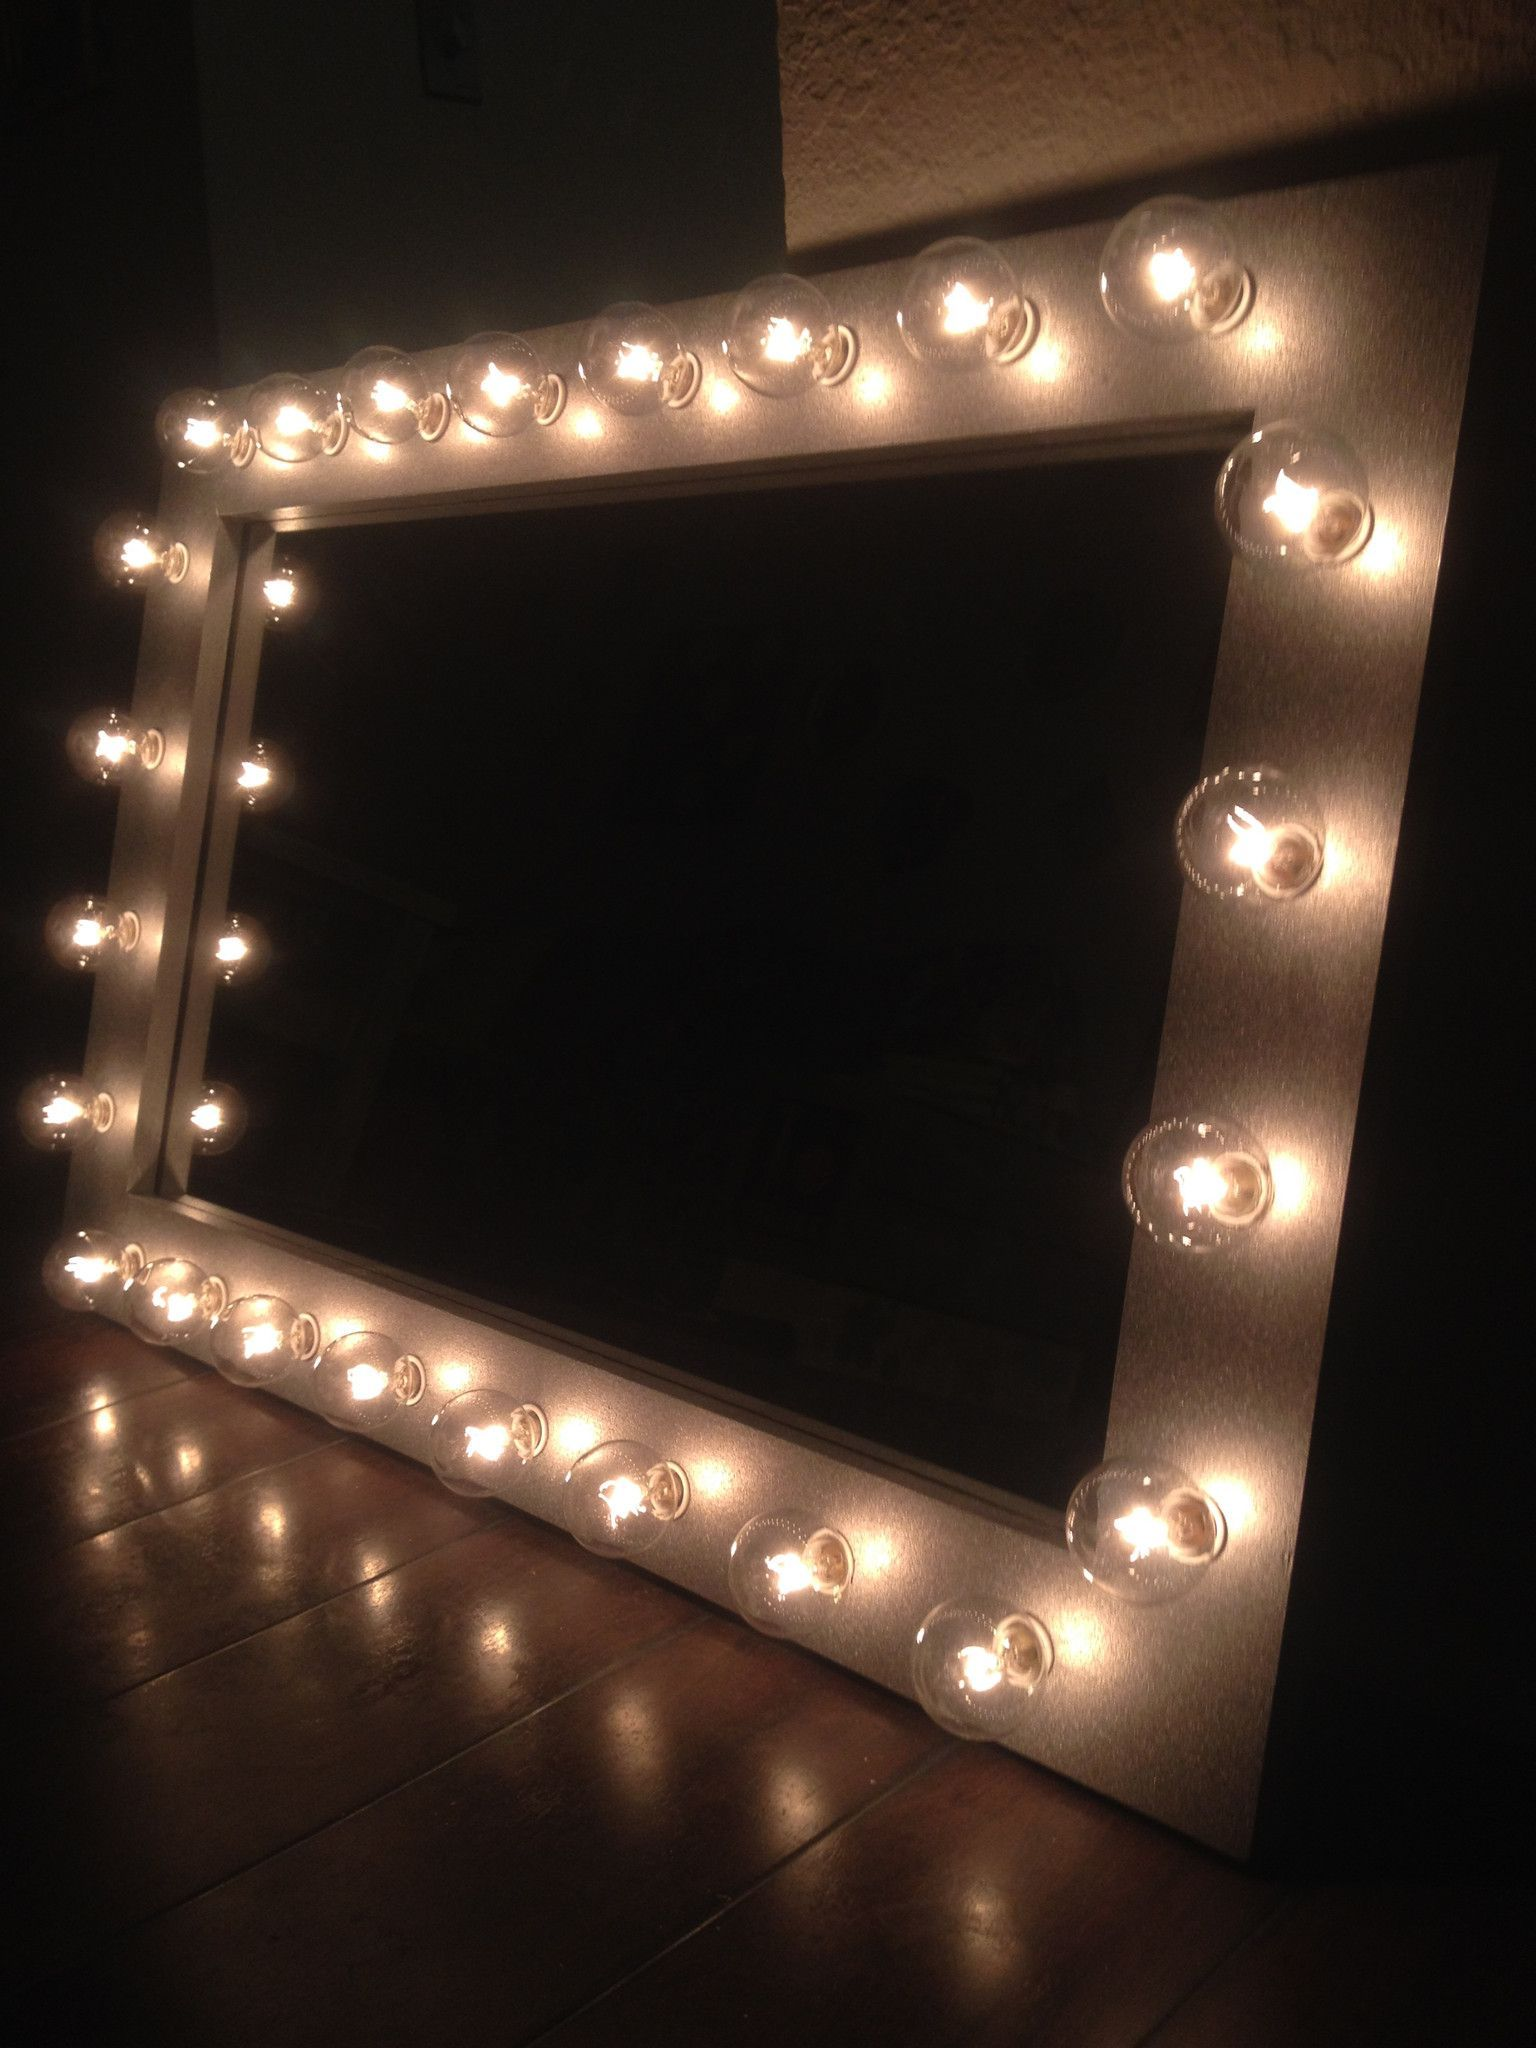 Silver belle lighted vanity mirror home bedroom decor - Bedroom vanity mirror with lights ...